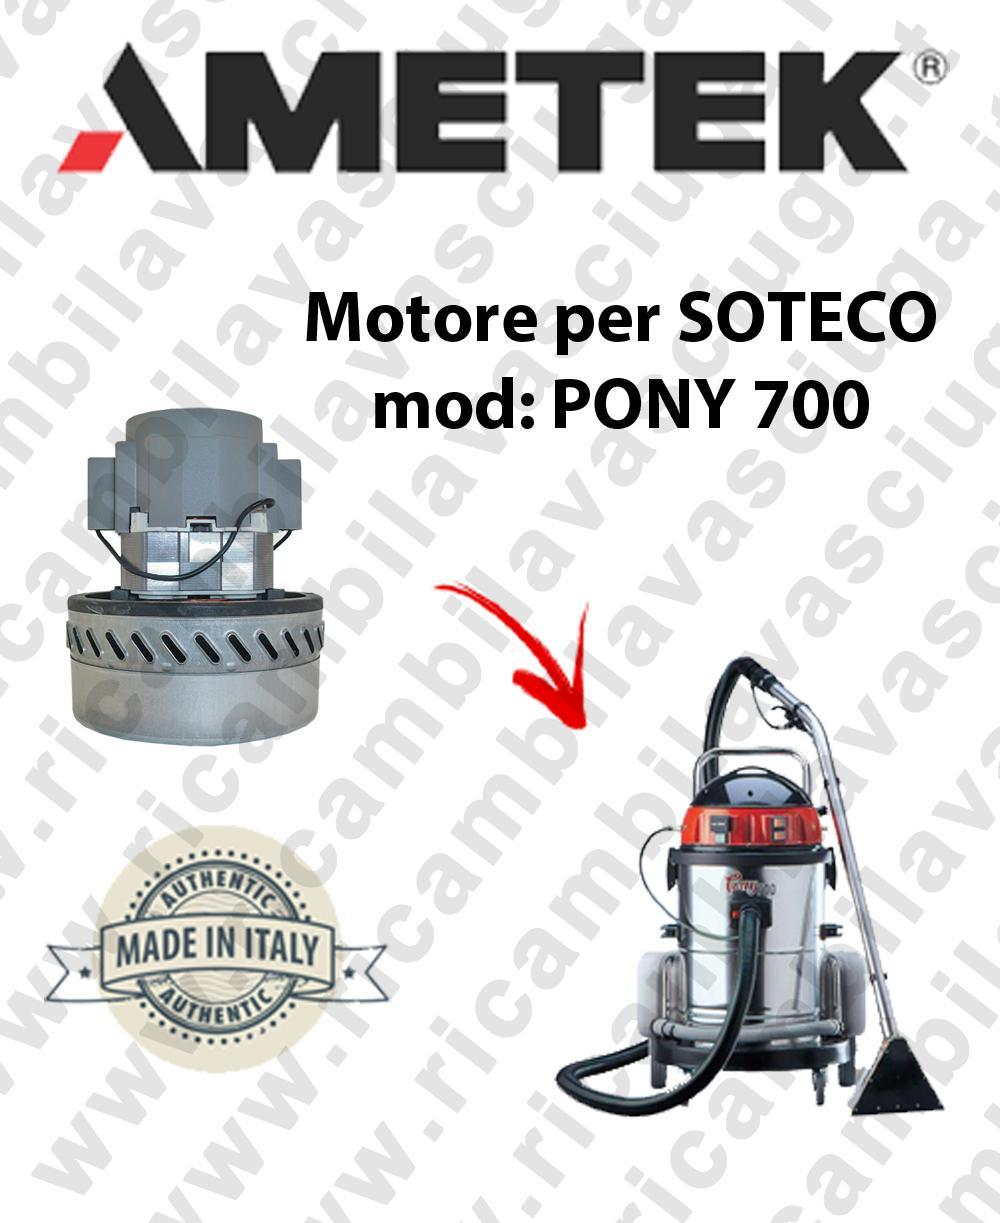 PONY 700 Ametek Vacuum Motor for vacuum cleaner SOTECO